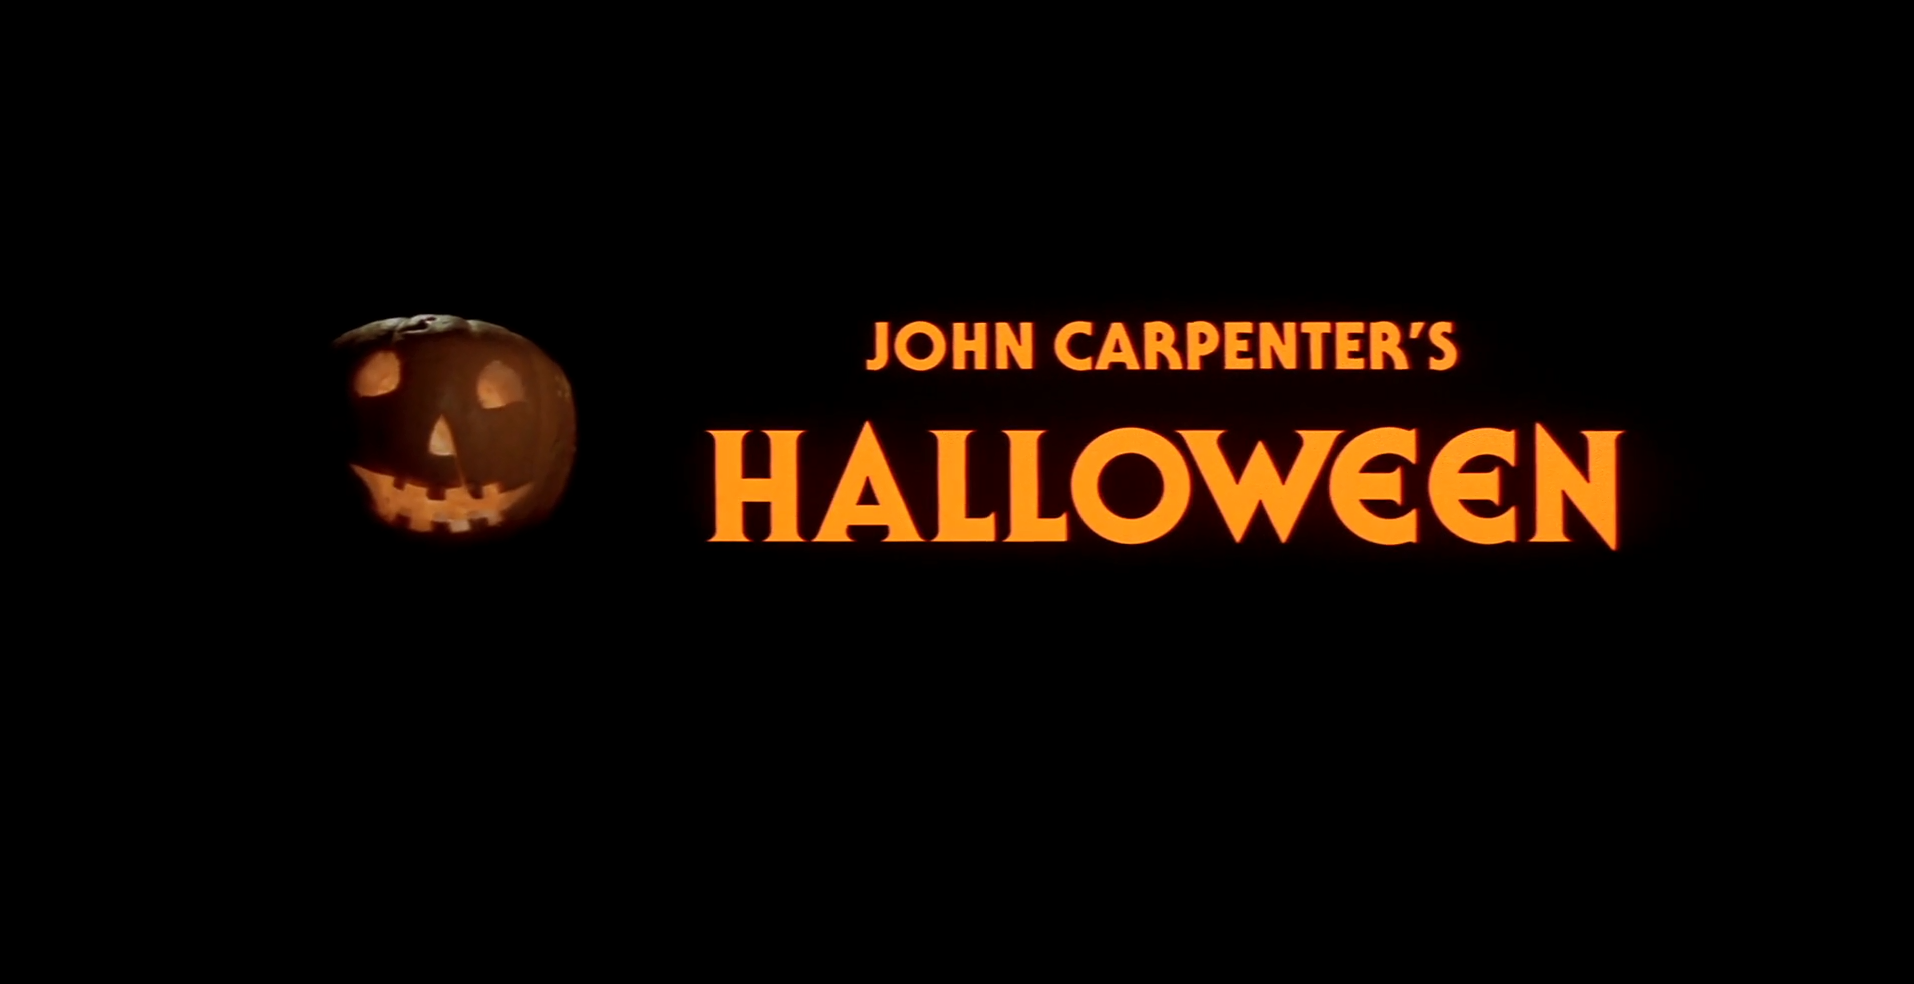 John Carpenter Reveals Creative Team Behind 'Halloween' Reboot